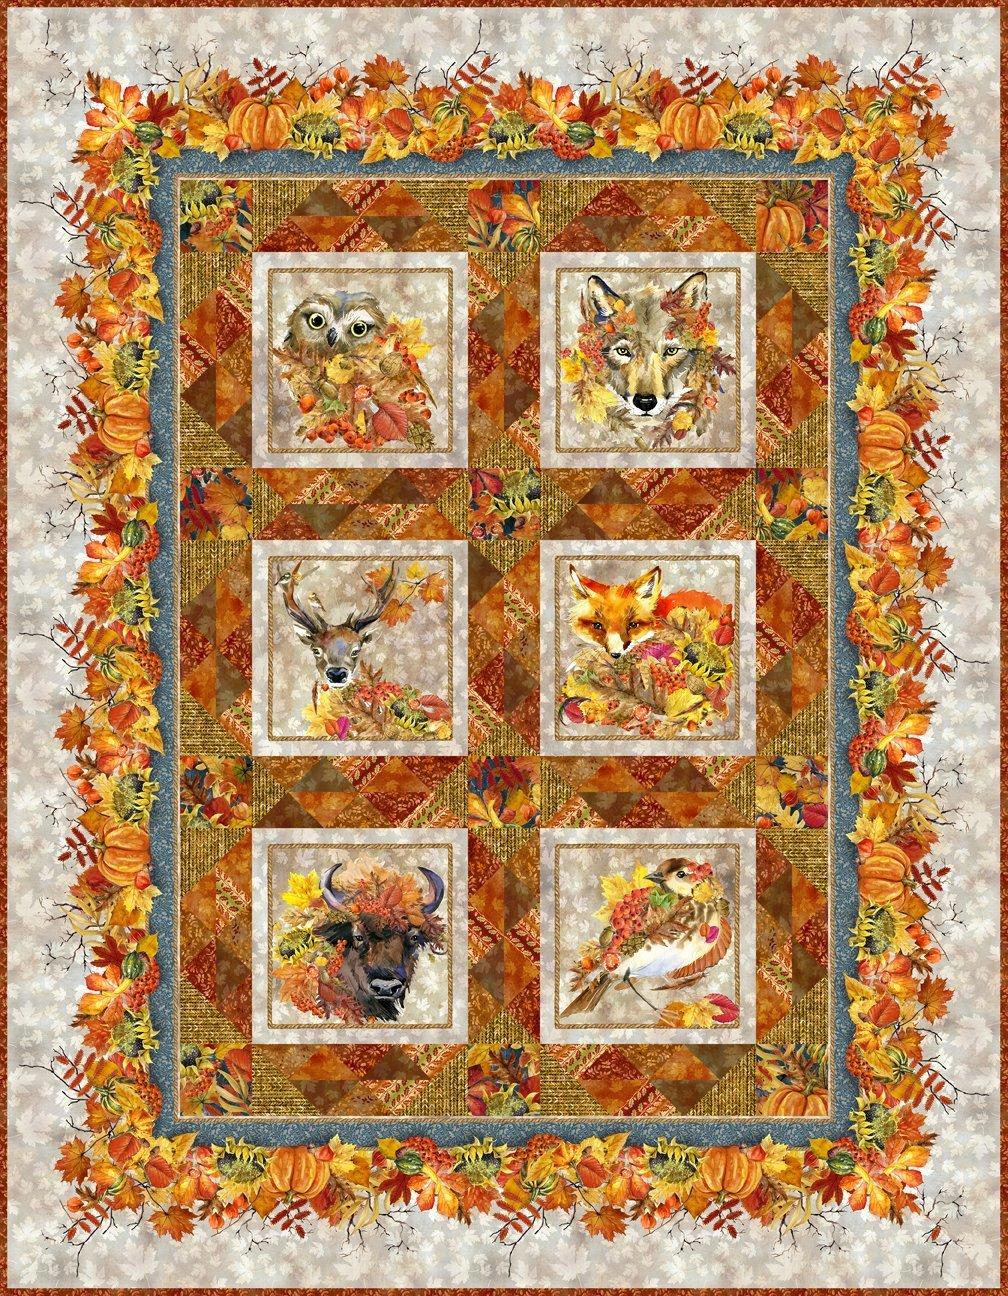 Our Autumn Friends Quilt Kit